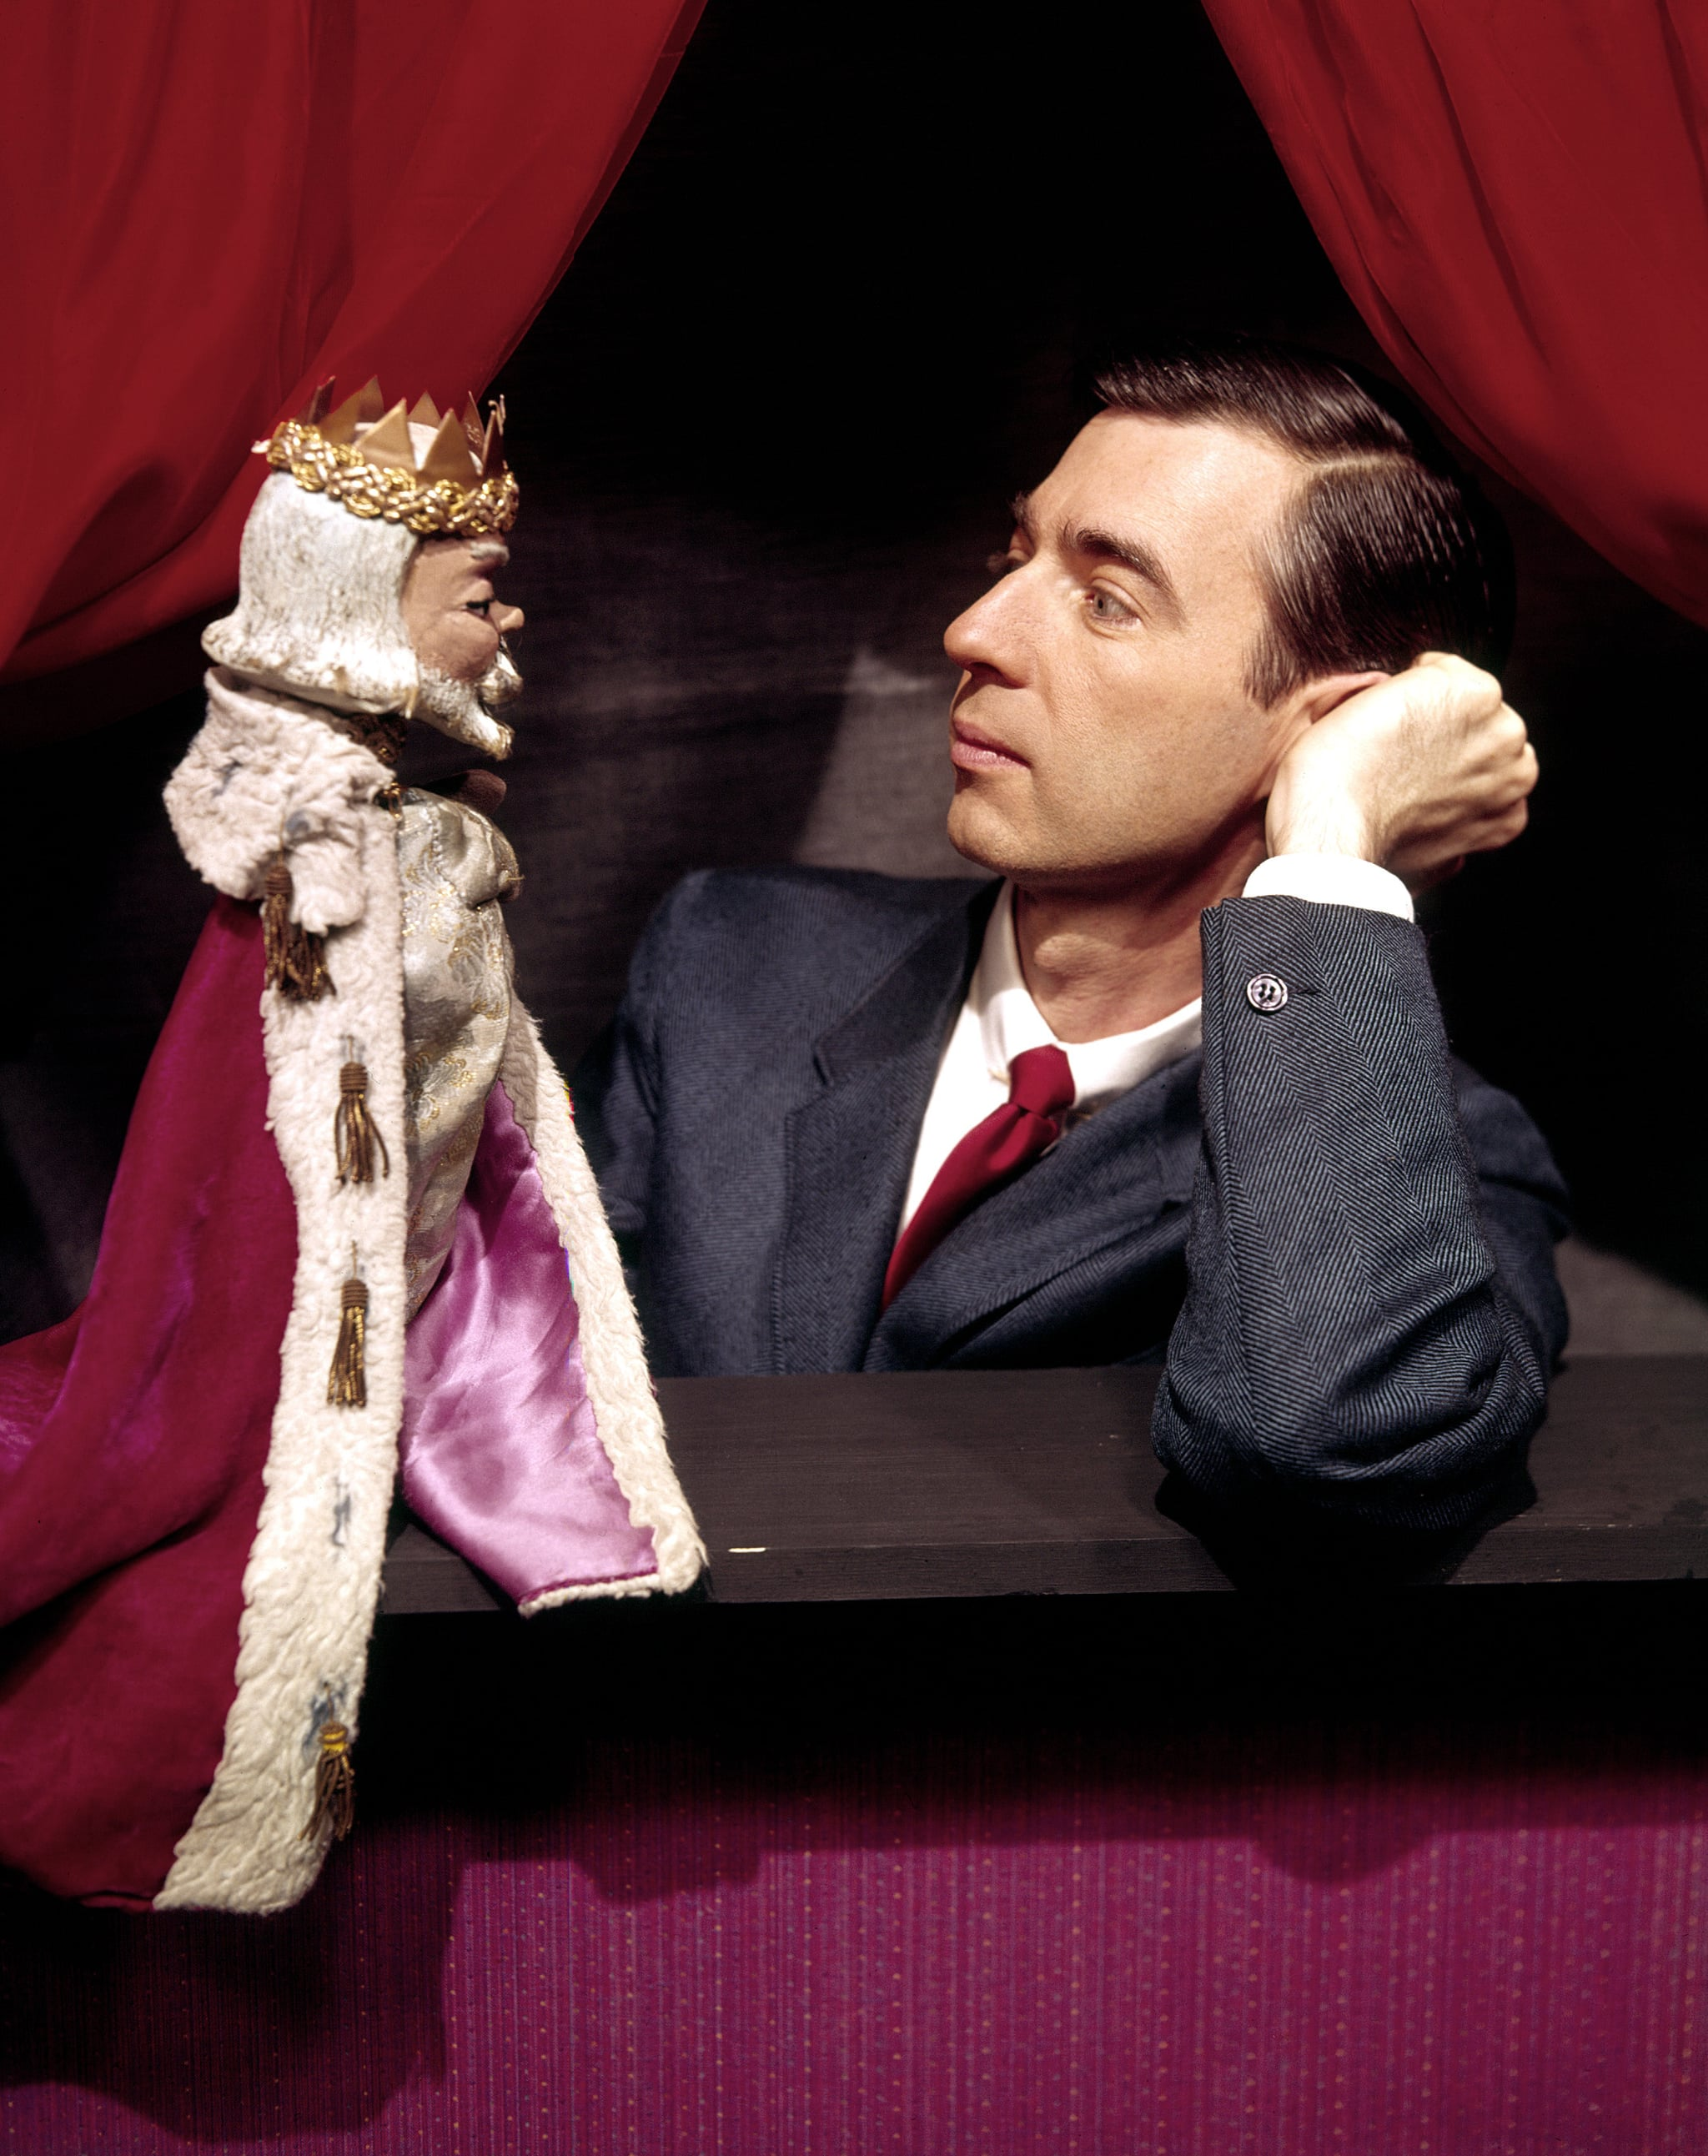 MISTER ROGERS' NEIGHBORHOOD, Fred Rogers and his puppet `King Friday', c. 1967 (at the start of the series)